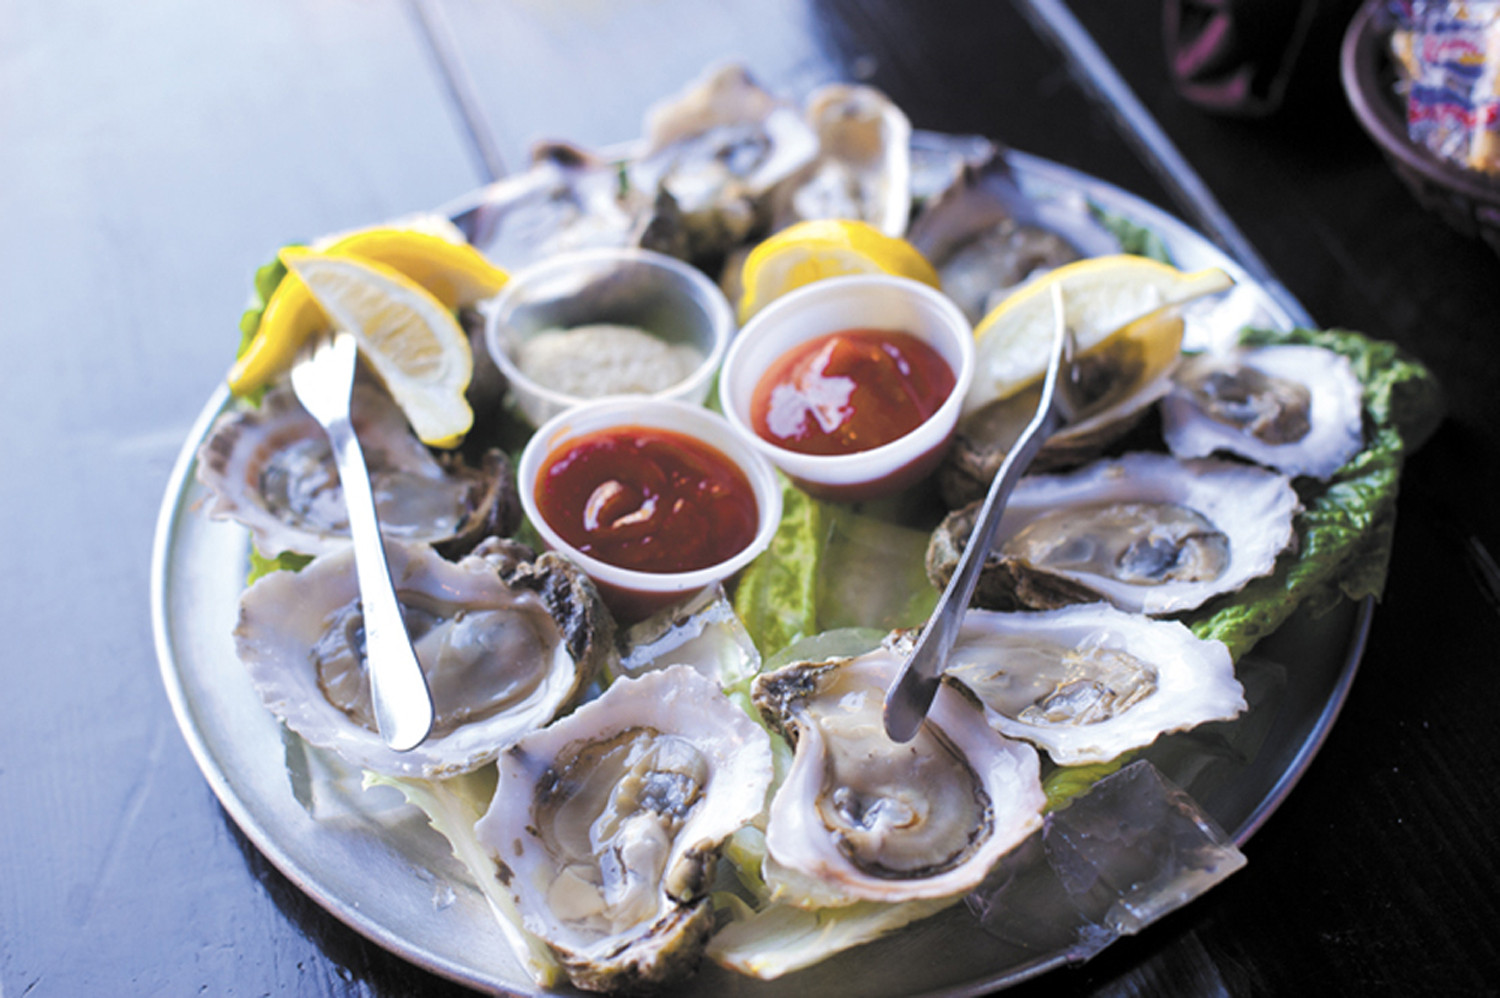 Thursdays at Sliders Seafood Grille are packed with folks hungry for unbeatable specials, like half-priced raw oysters by the dozen.